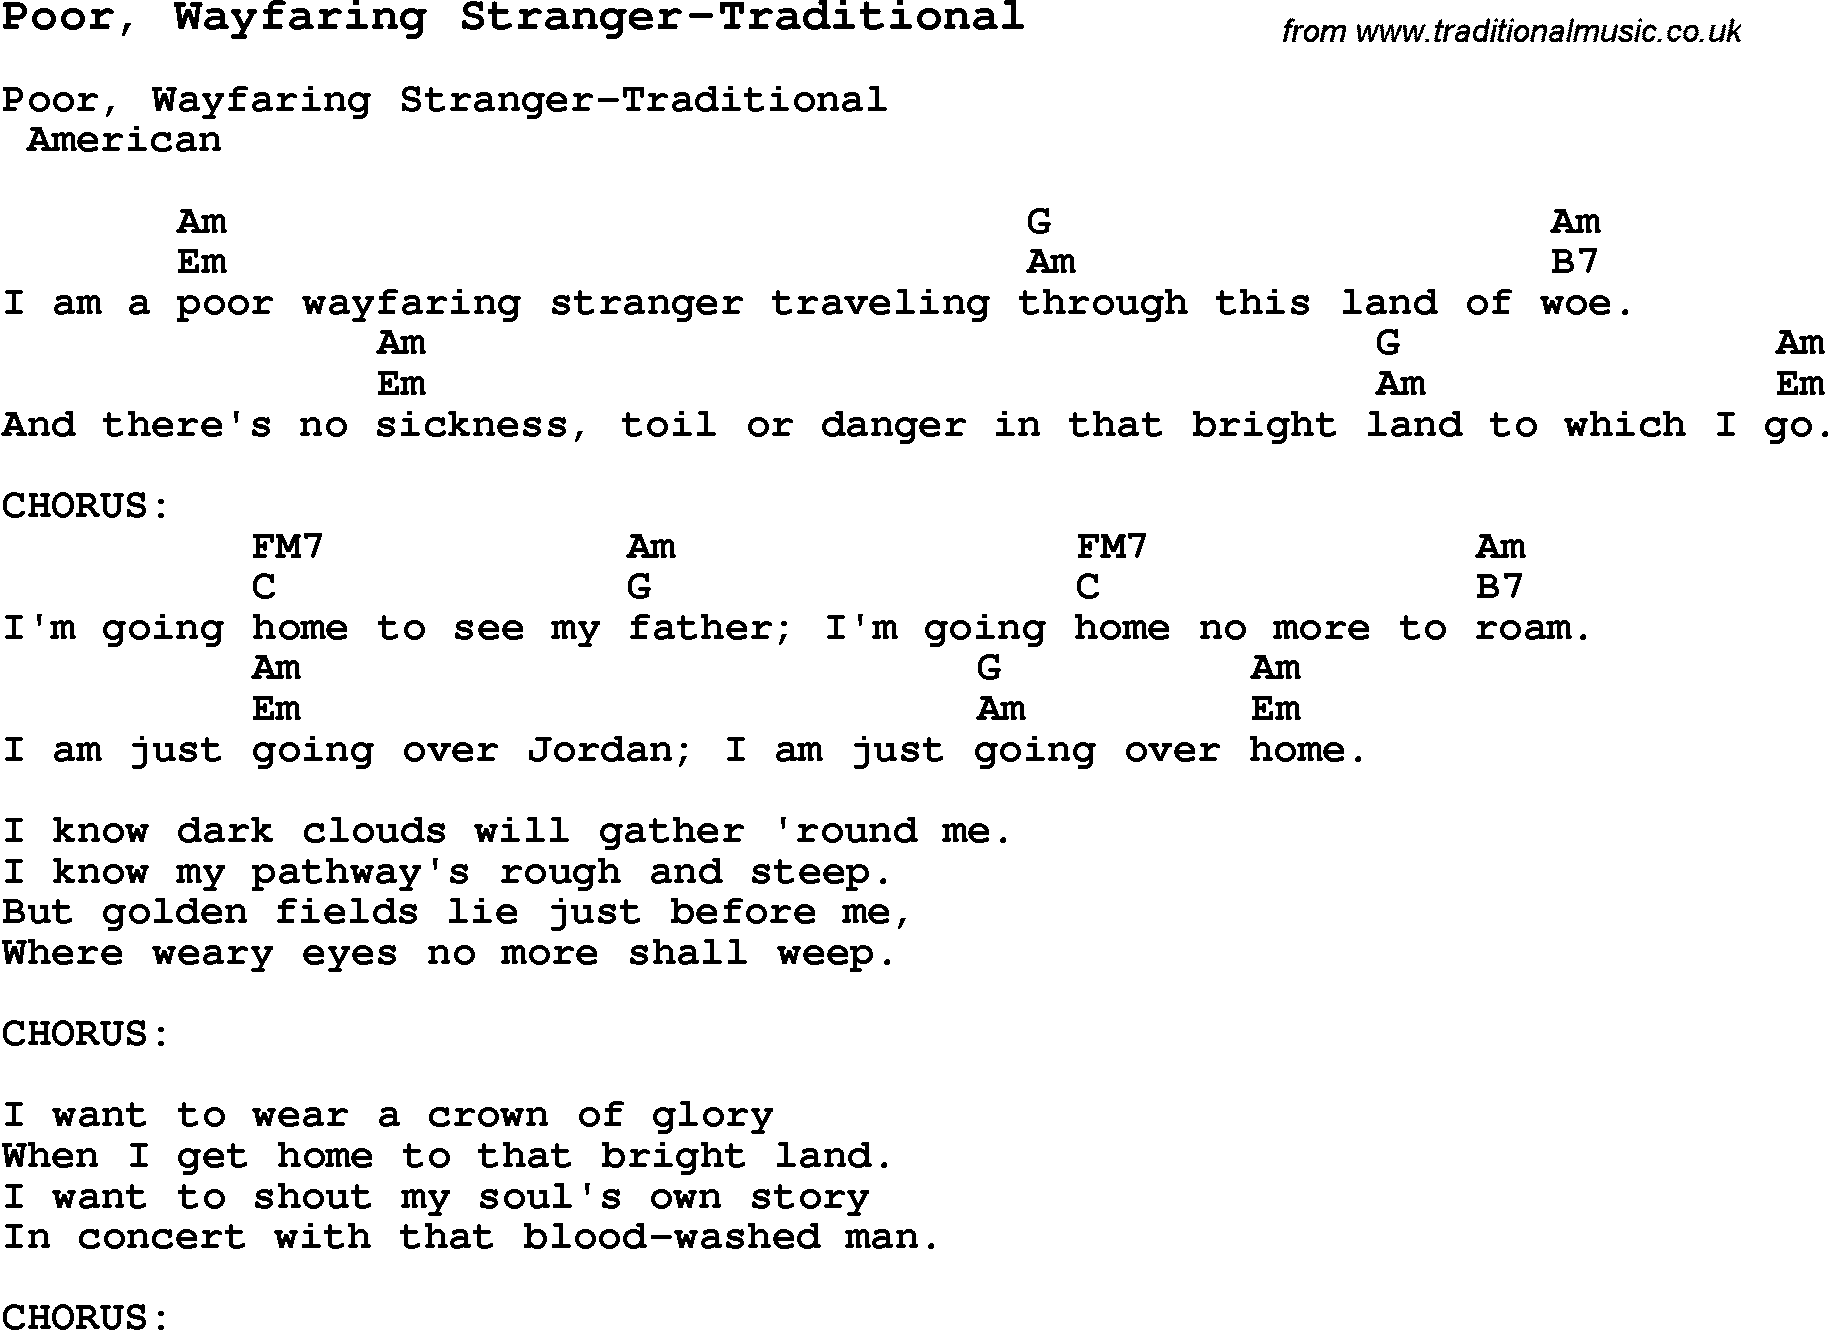 Summer Camp Song, Poor, Wayfaring Stranger-Traditional, with lyrics and chords for Ukulele ...